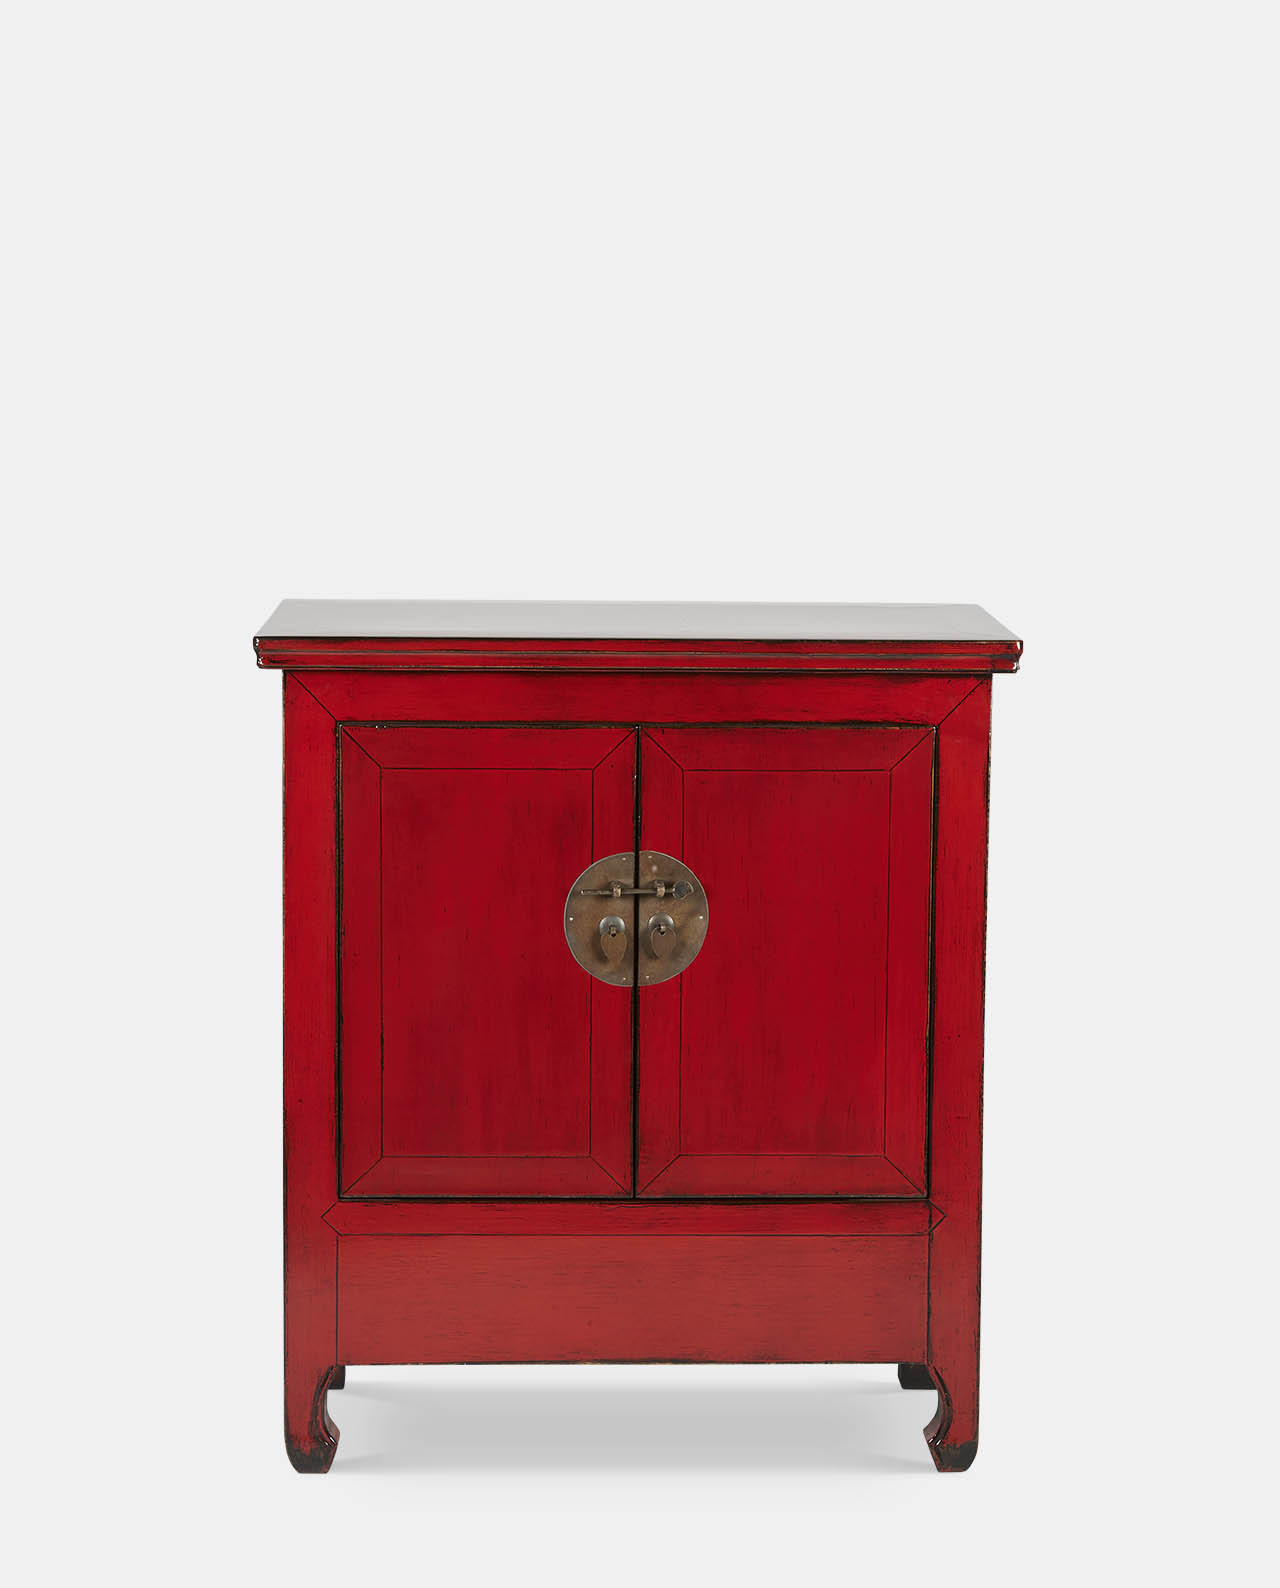 Tsang Small Red Cabinet